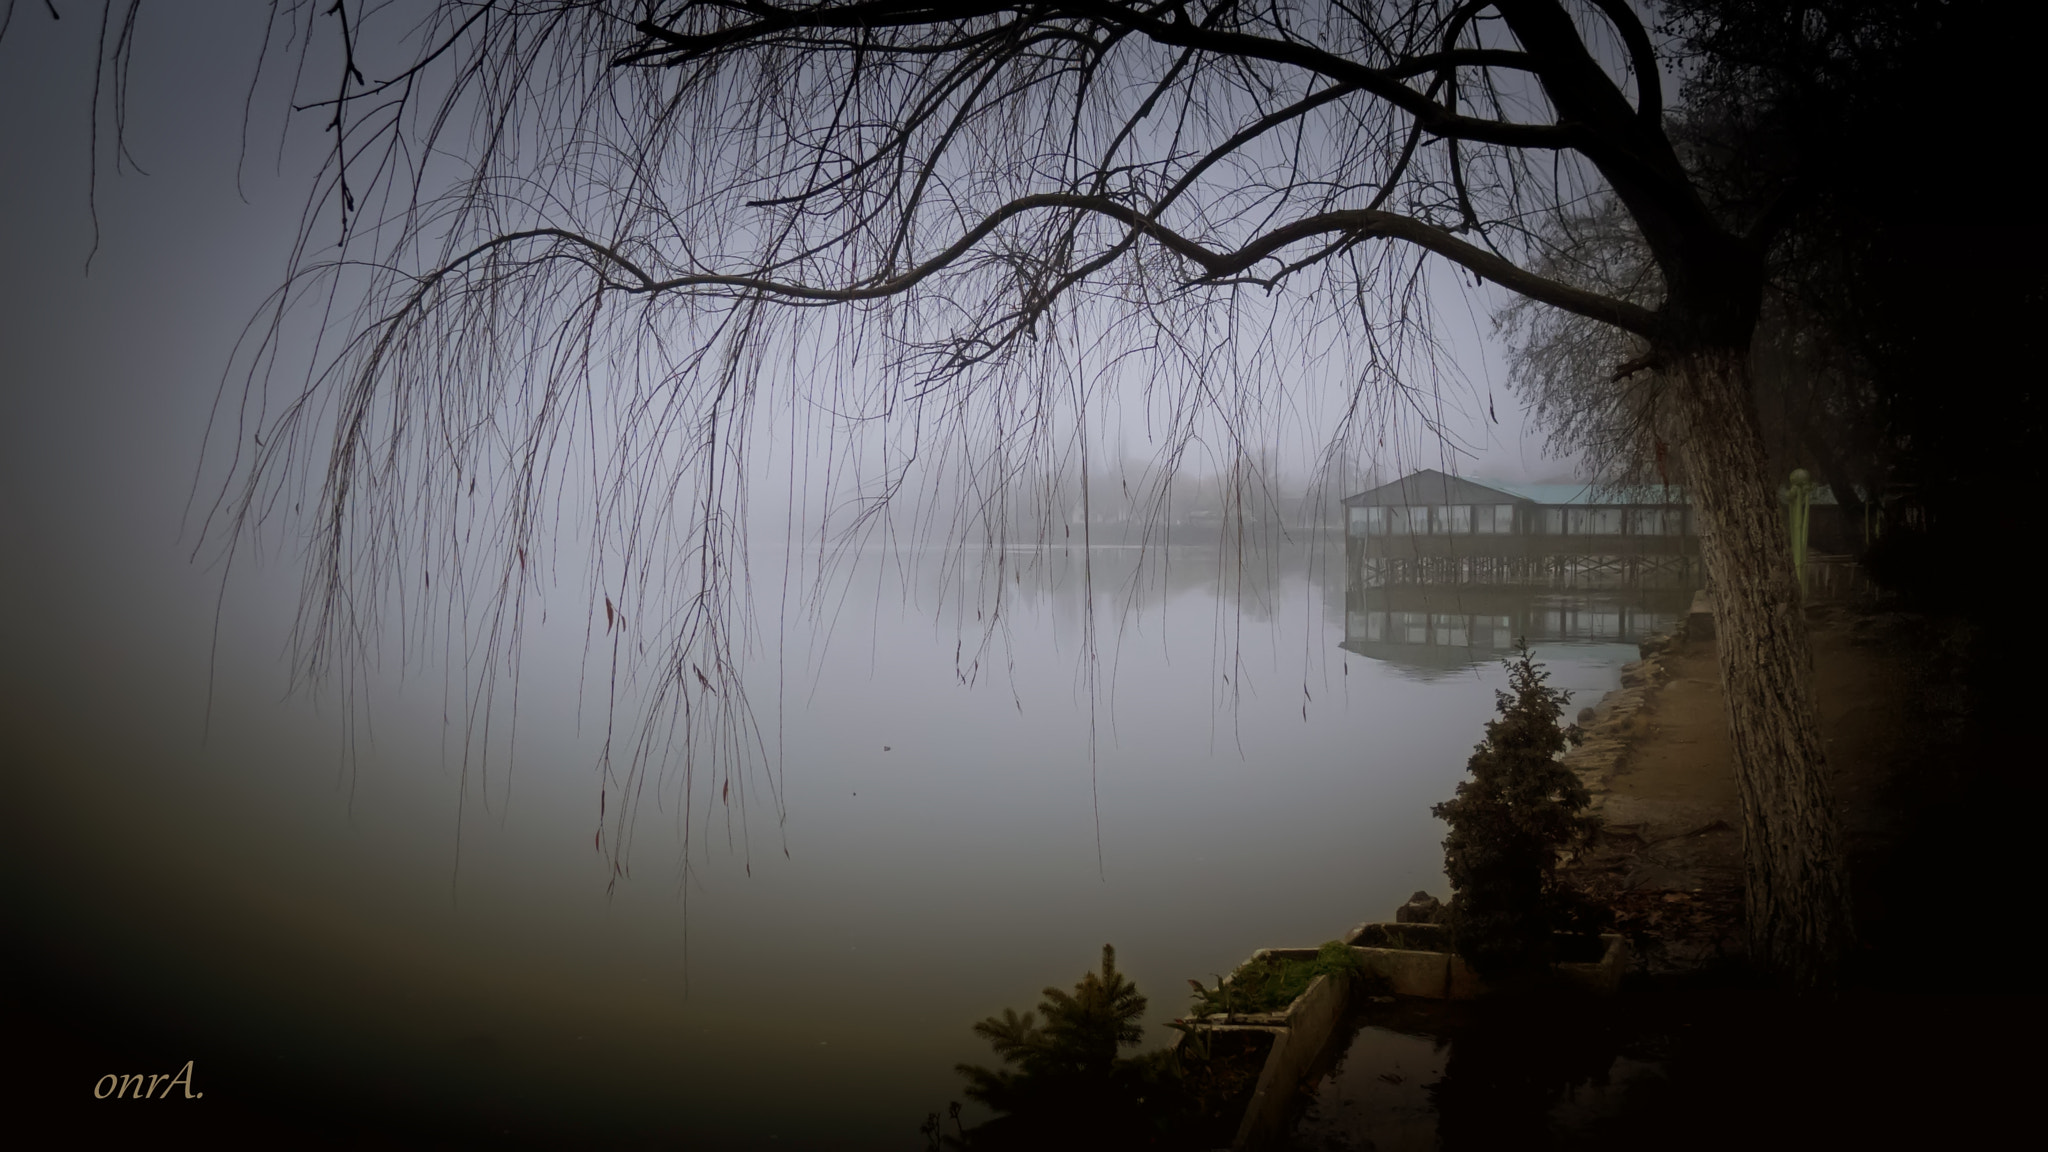 Photograph lake and fog by onr A. on 500px